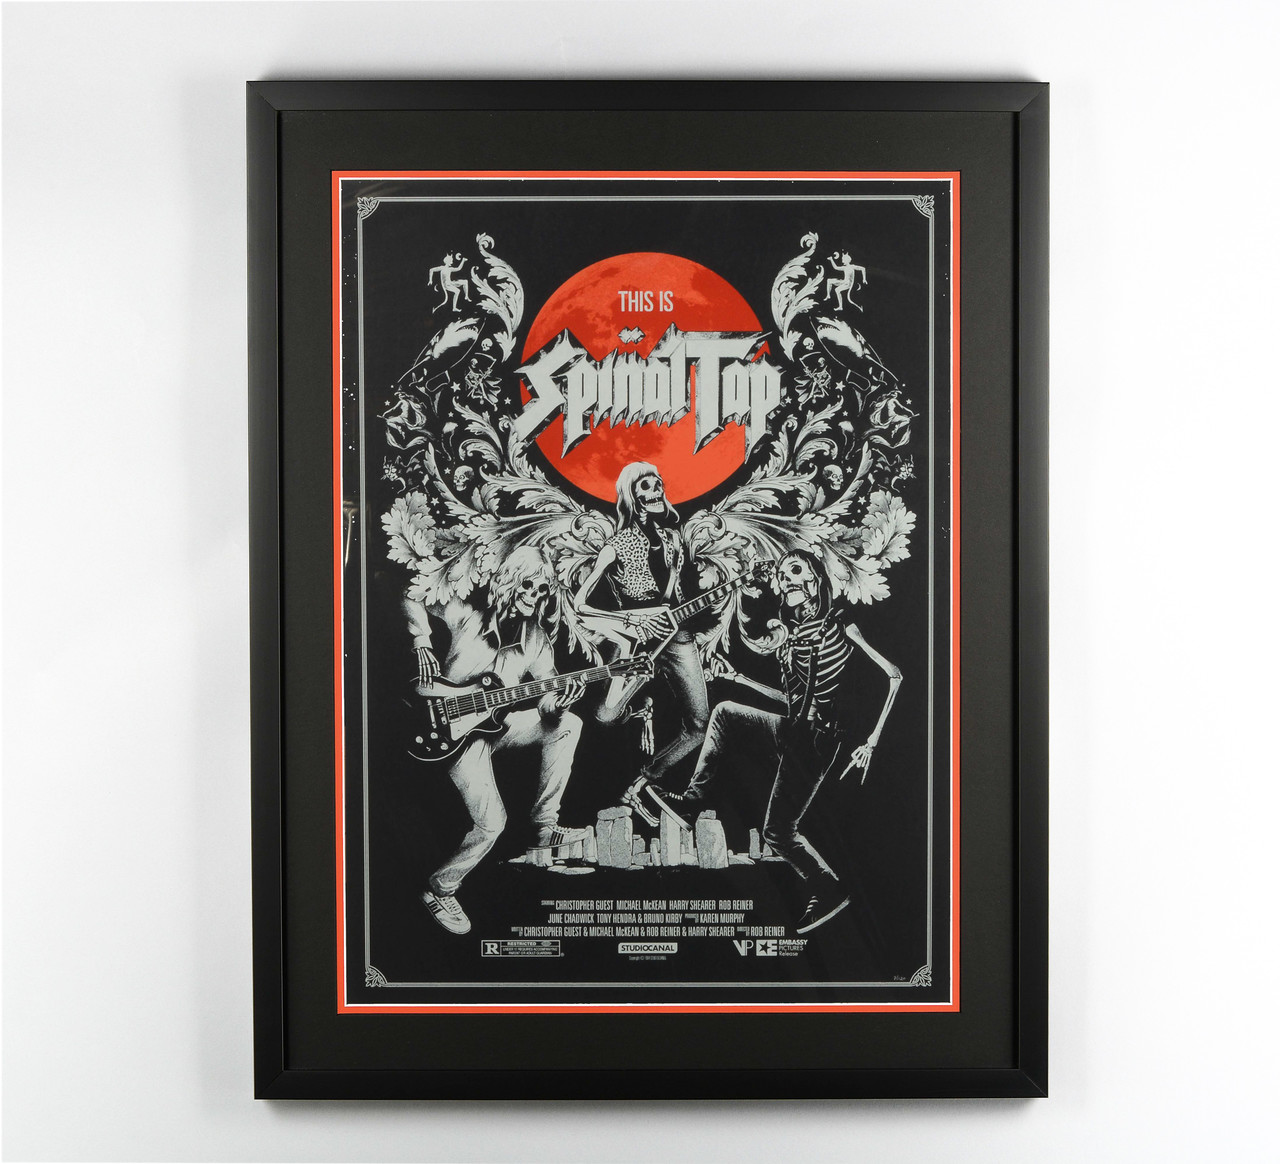 Spinal Tap Custom Framed Collectible